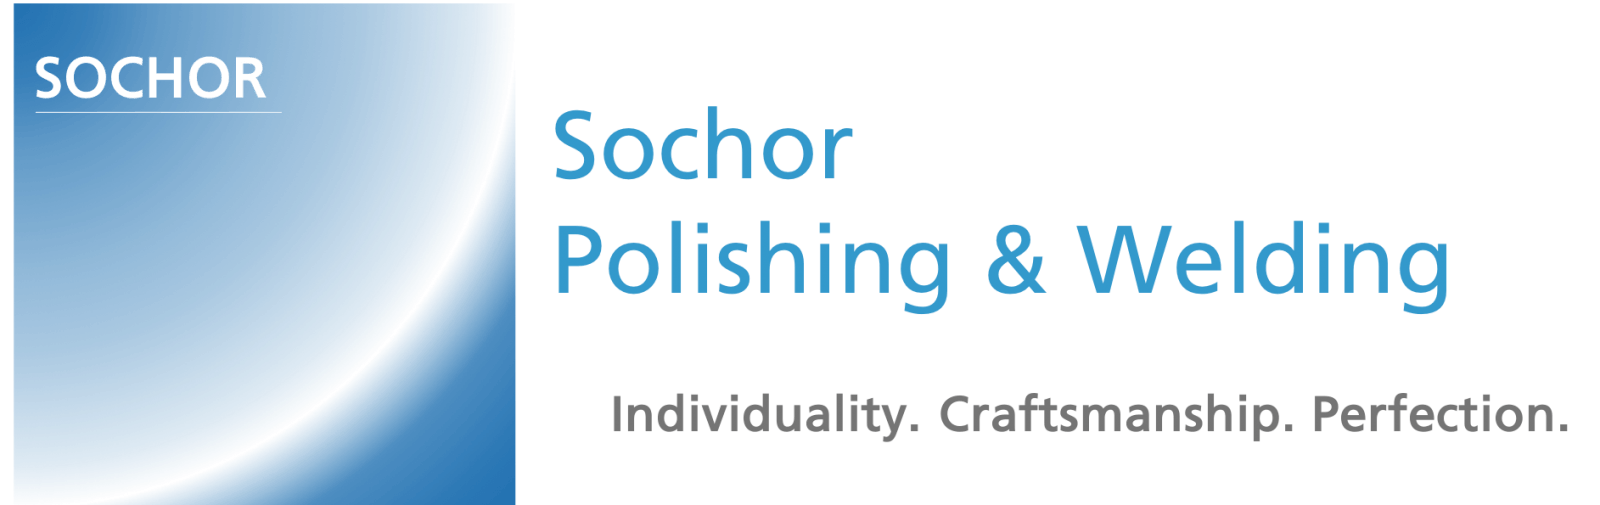 Sochor Polishing & Welding